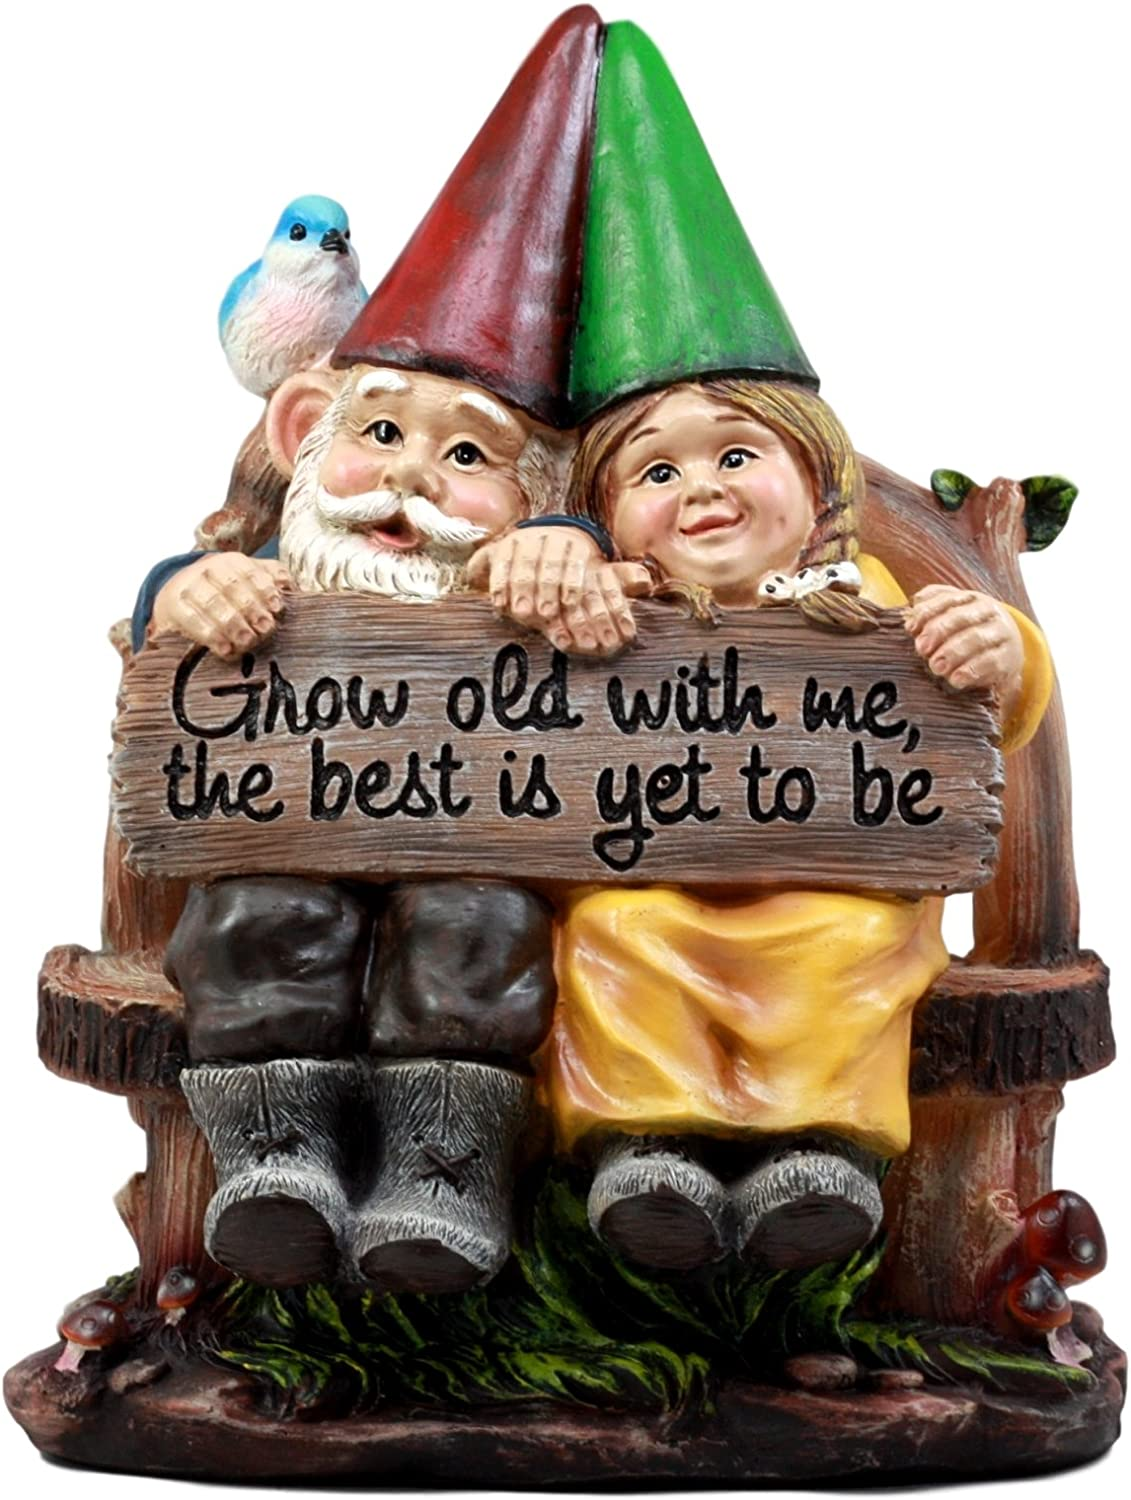 Ebros Gift Whimsical Mr & Mrs Gnome Sitting On Rustic Chair with Blue Bird Statue Grow Old with Me Guest Greeter Patio